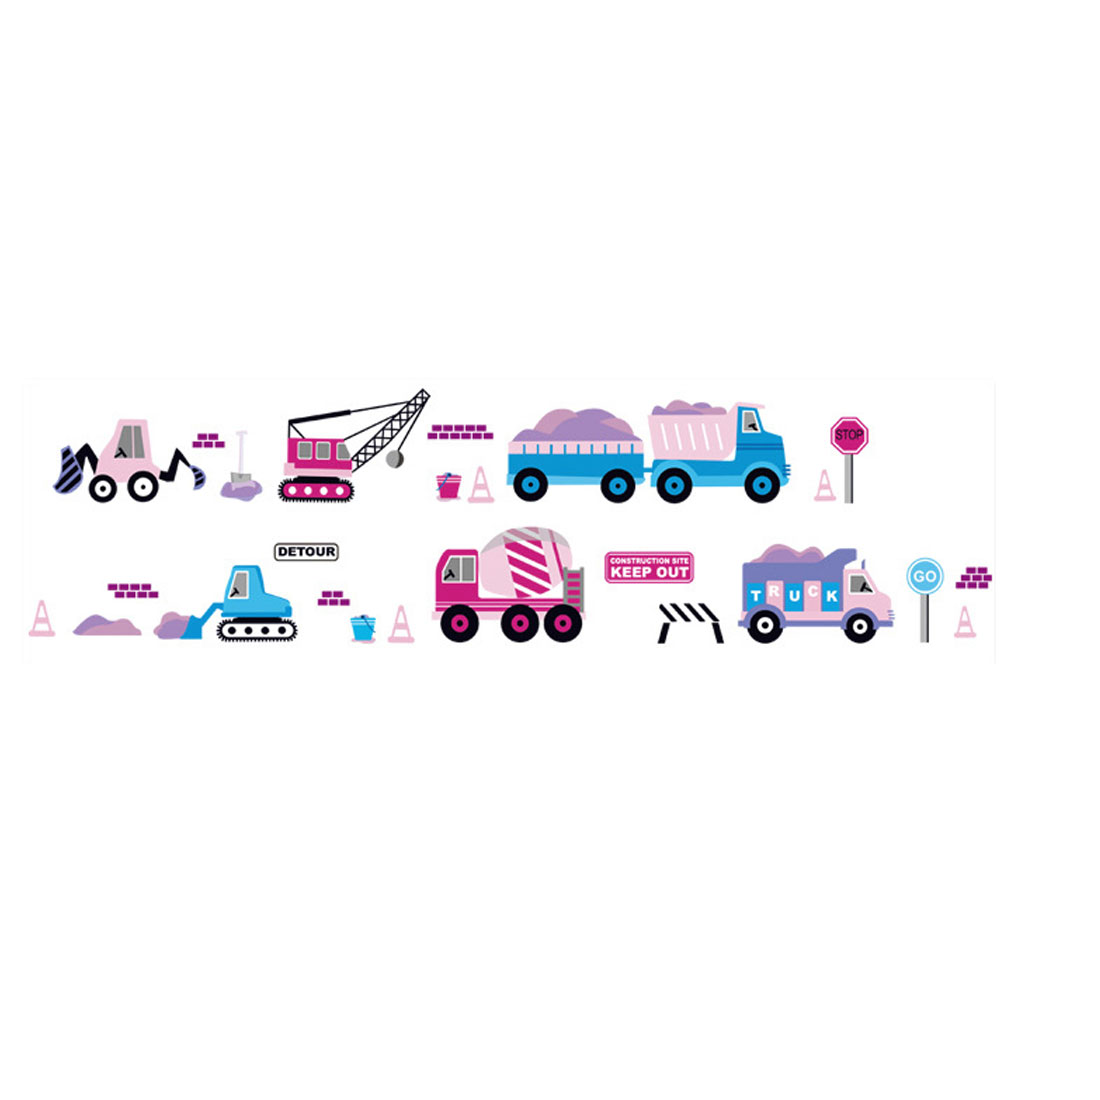 "Living Room Detailing DIY Mural Toy Cars Wall Sticker Decal 59"" x 16"" Pink Blue"